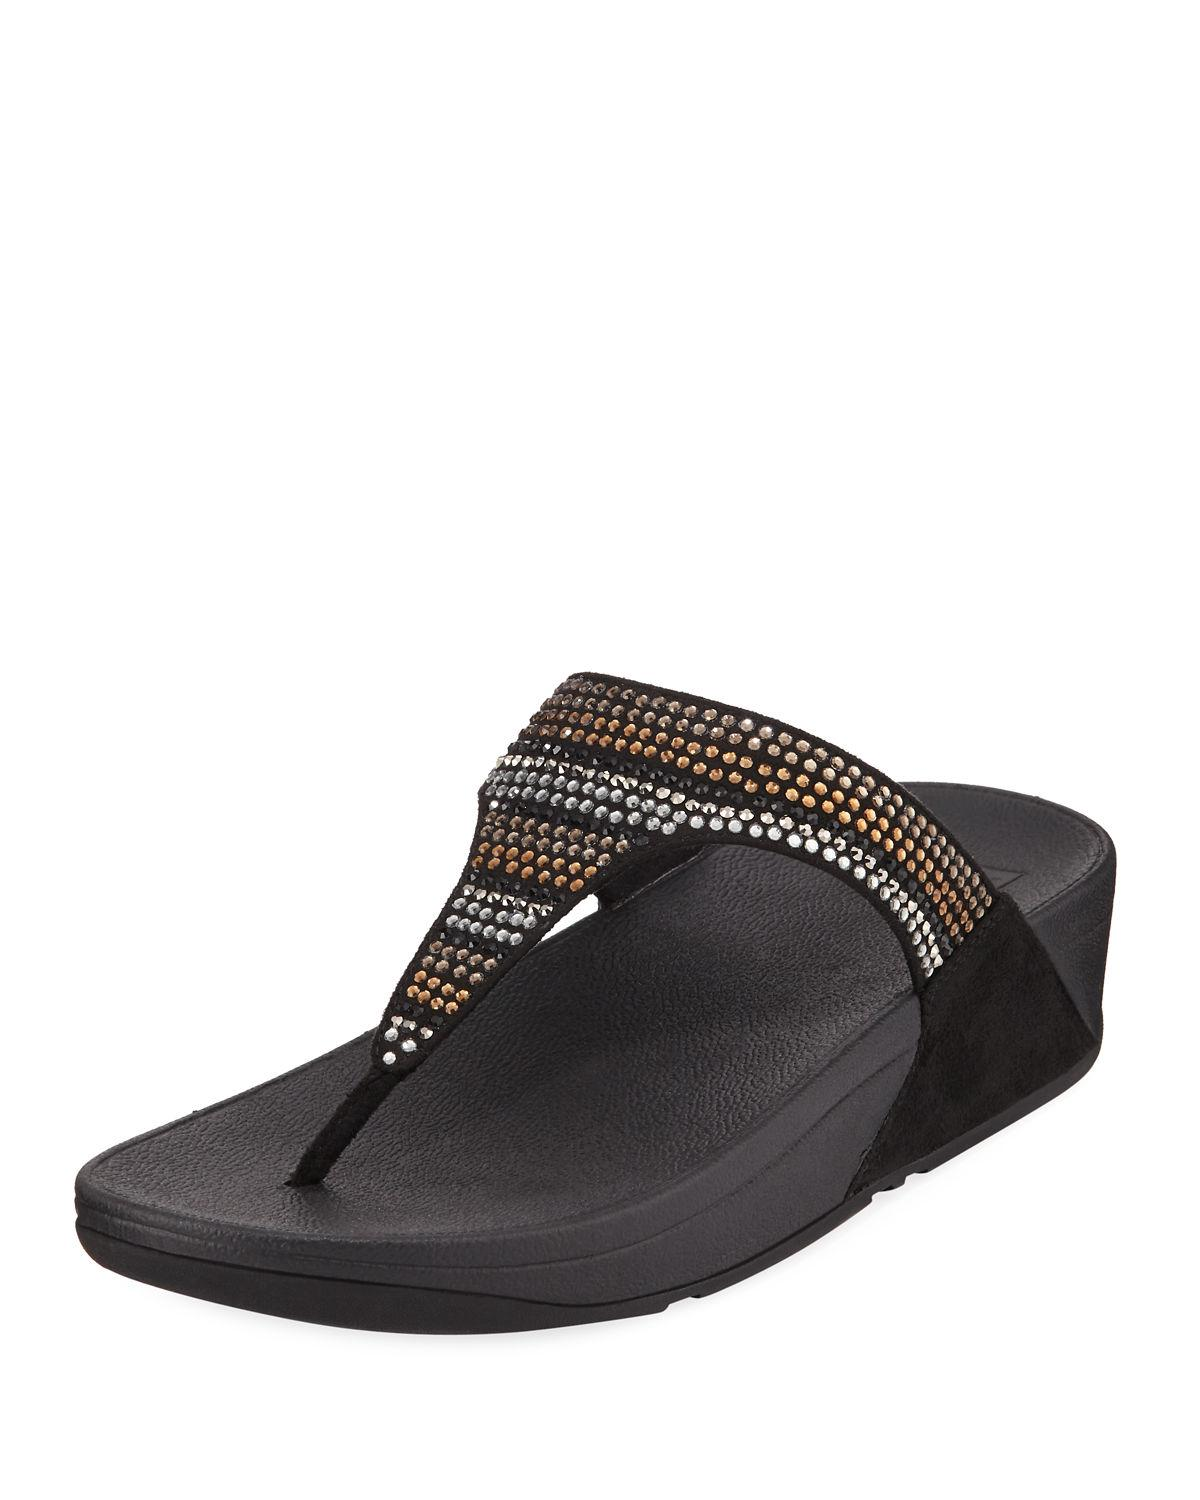 1a1035c5c Lyst - Fitflop Strobe Luxe Thong Platform Sandal in Black